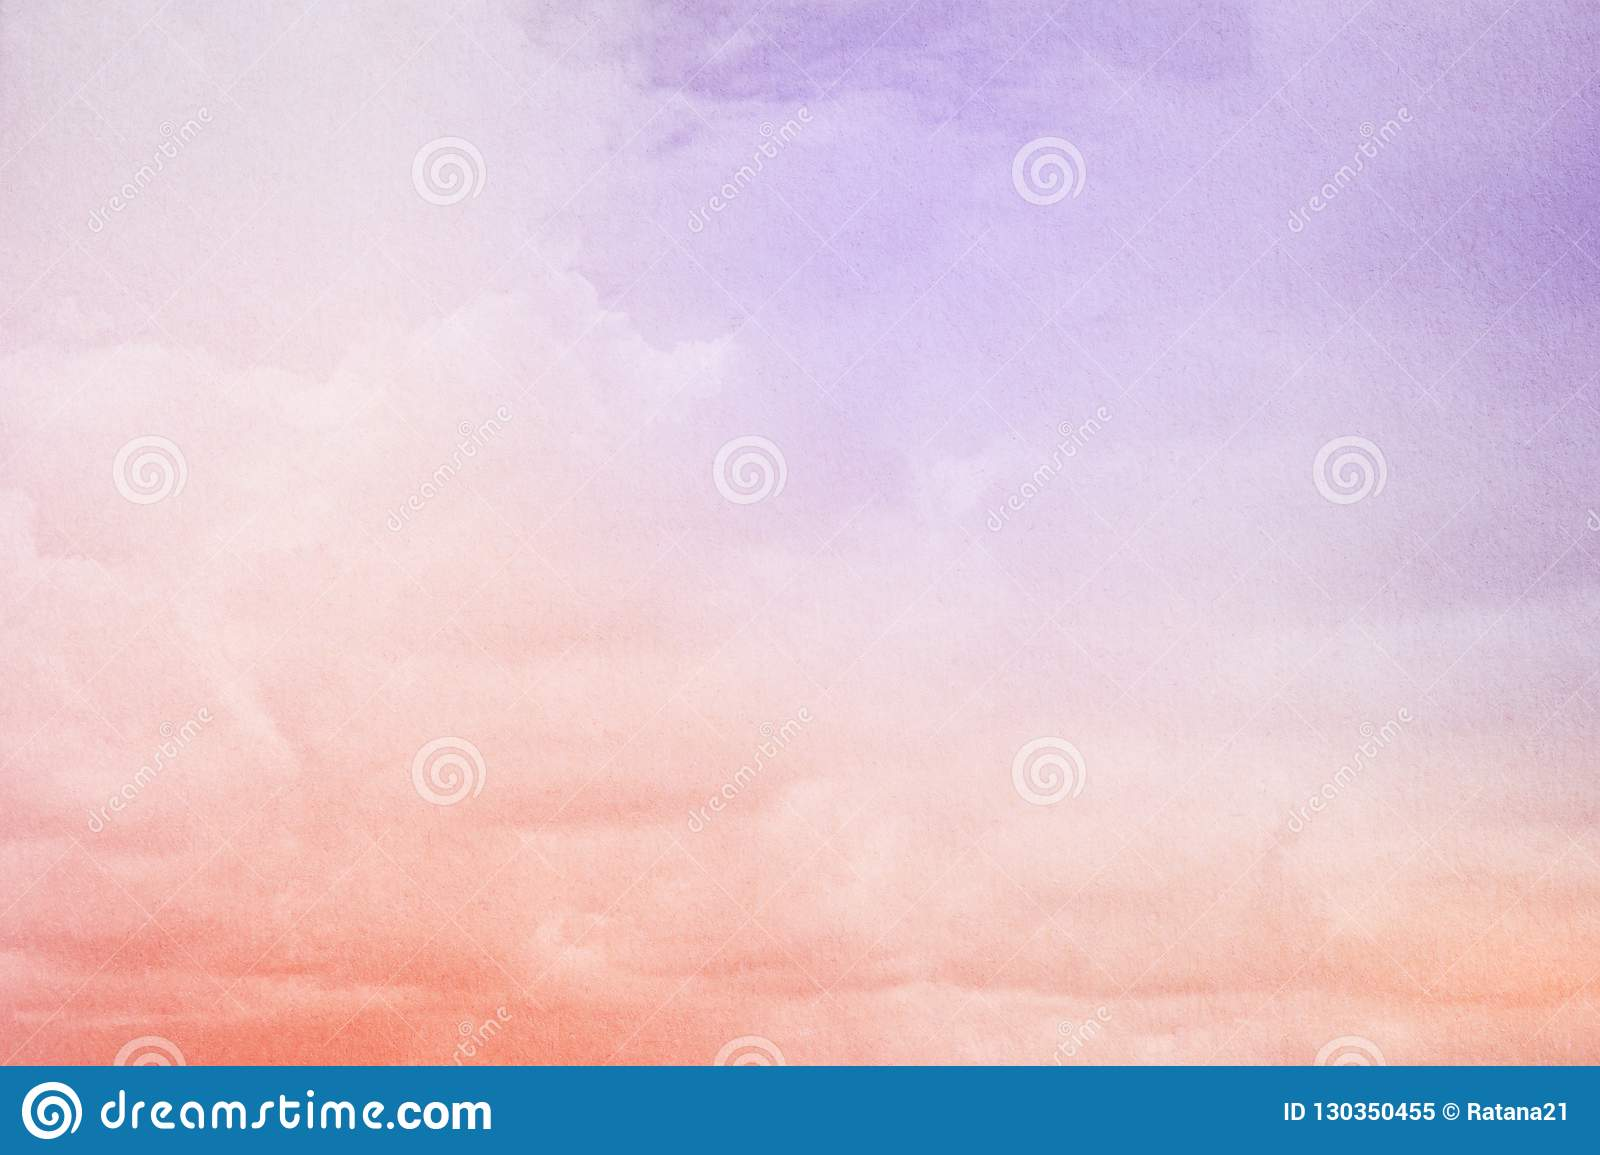 d29292b83e Fantasy Cloudy Sky With Pastel Gradient Color And Grunge Texture ...